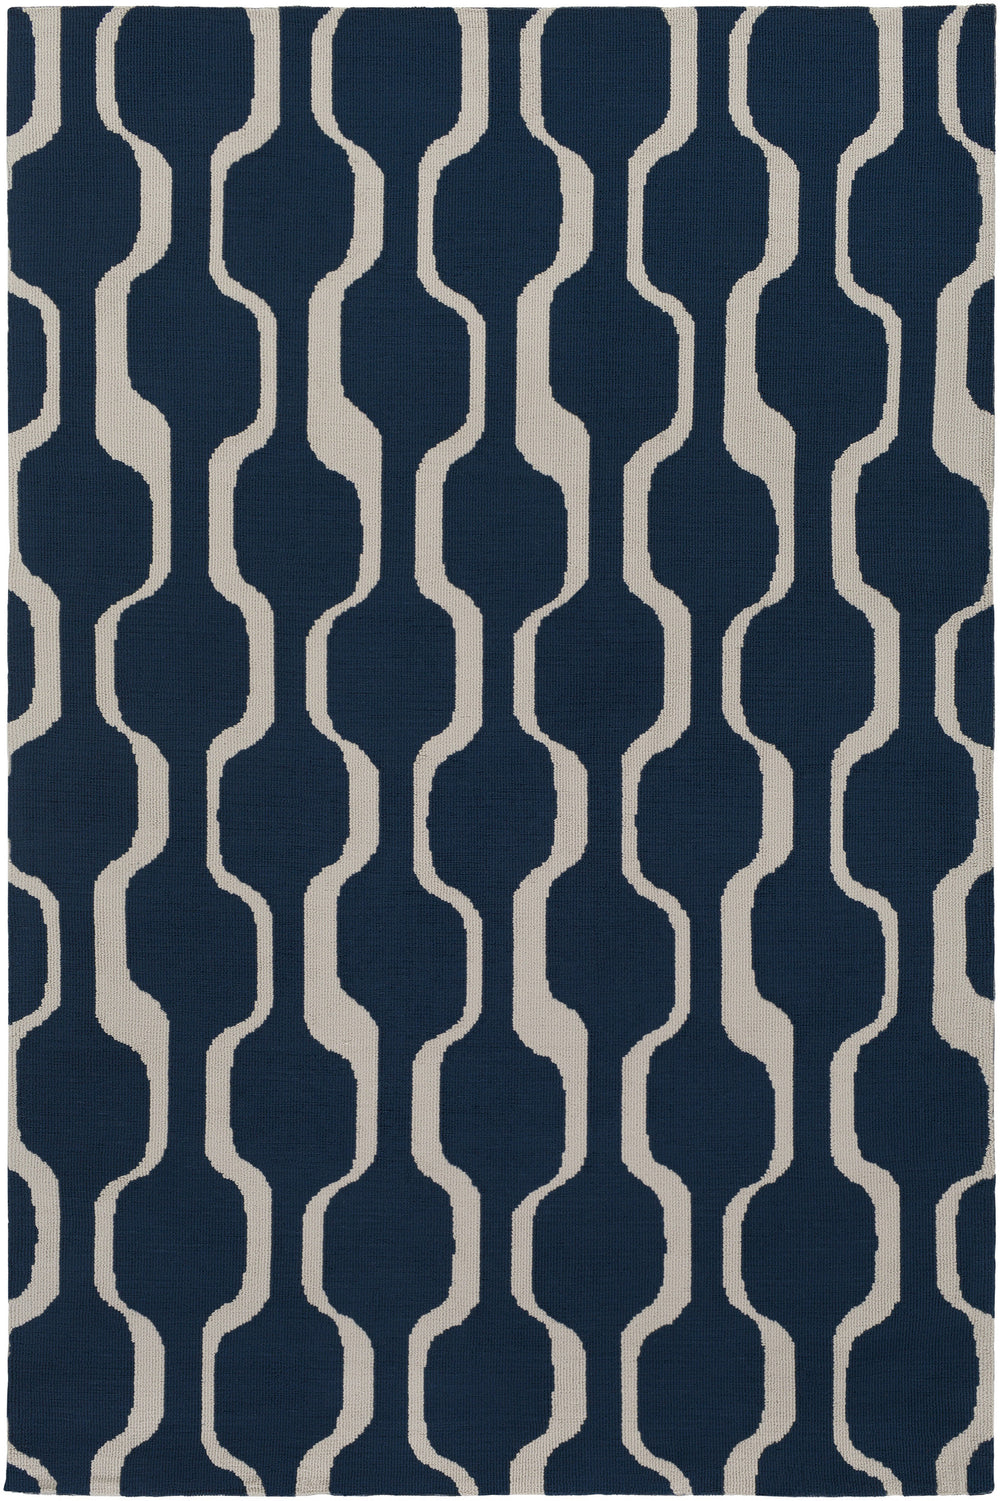 Artistic Weavers Joan Tilden JOAN6067 Area Rug